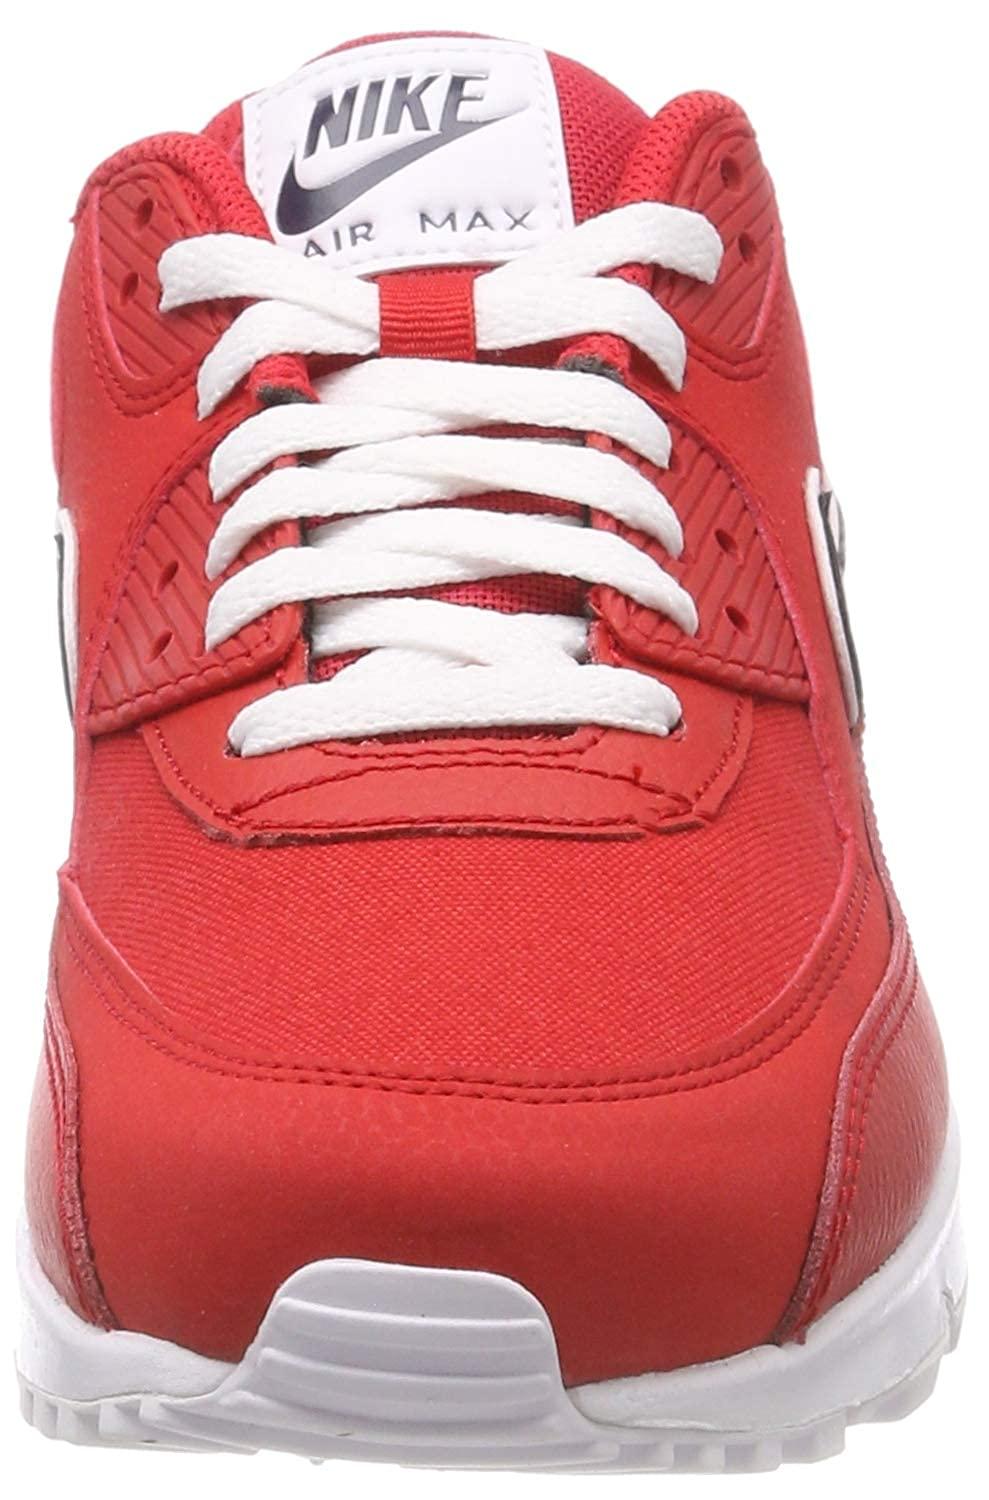 on sale 493c7 fb502 Nike Men s Air Max 90 Essential Low-Top Sneakers  Amazon.co.uk  Shoes   Bags